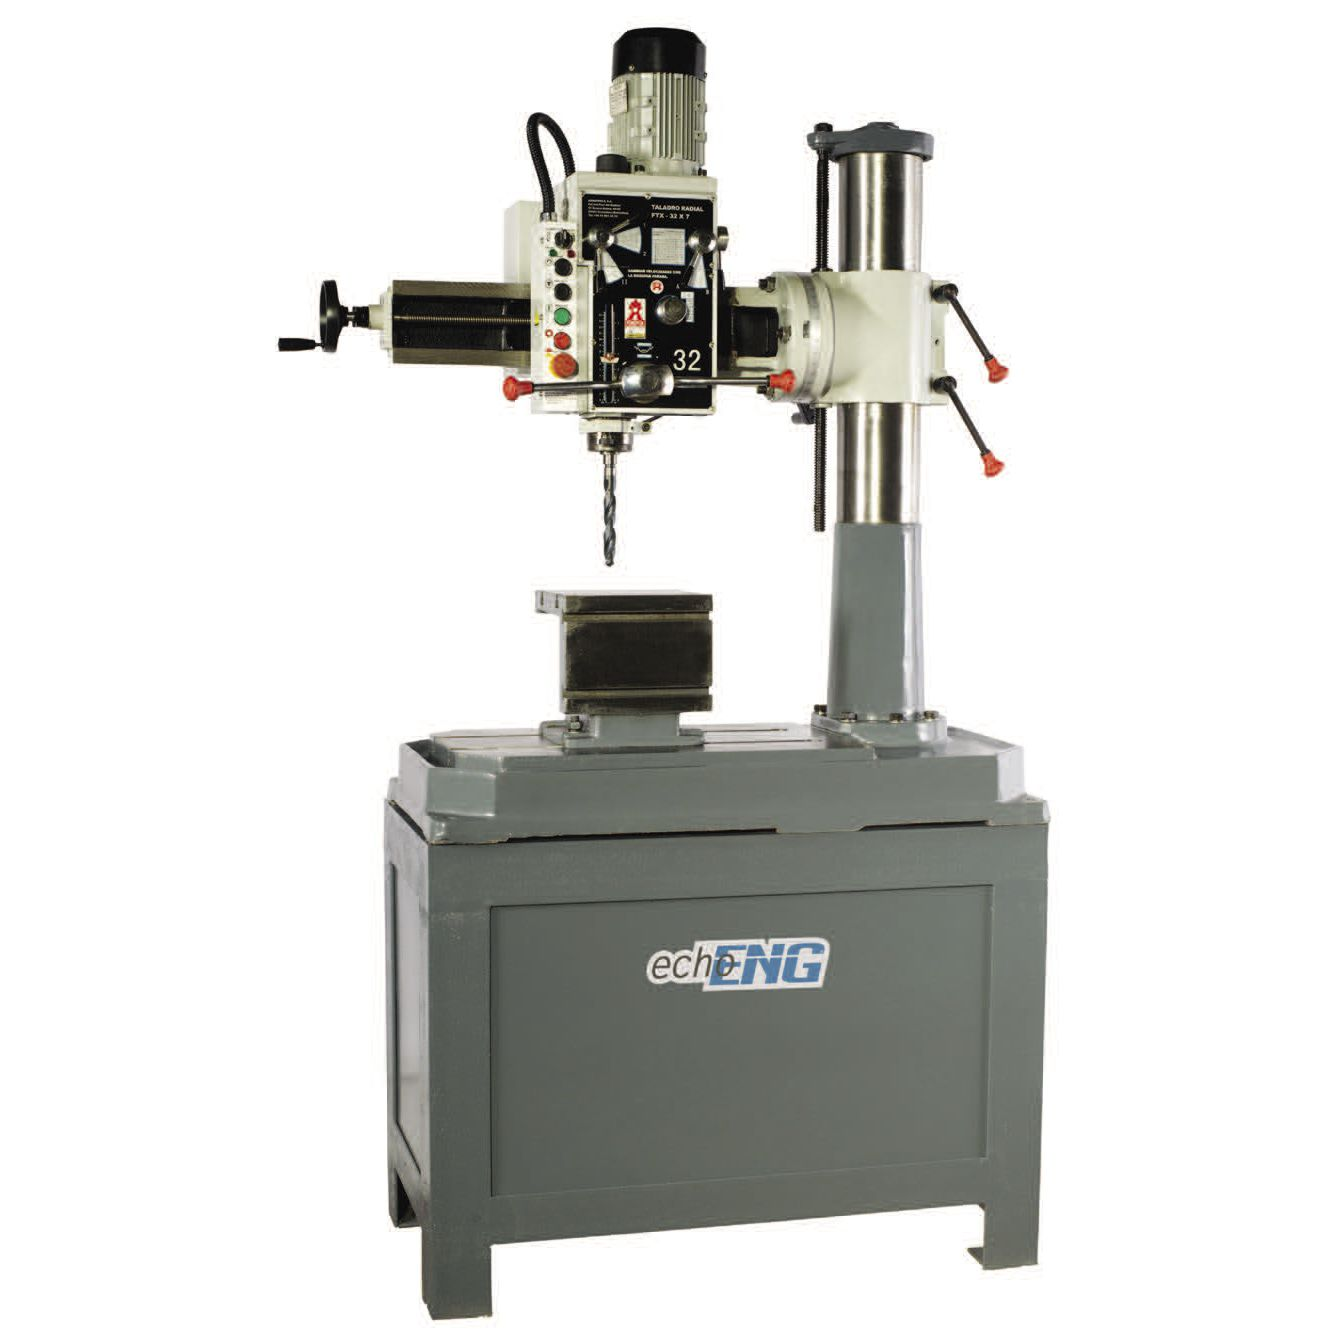 Radial drilling machine / single-spindle - FTX-32X7 TR - echoENG